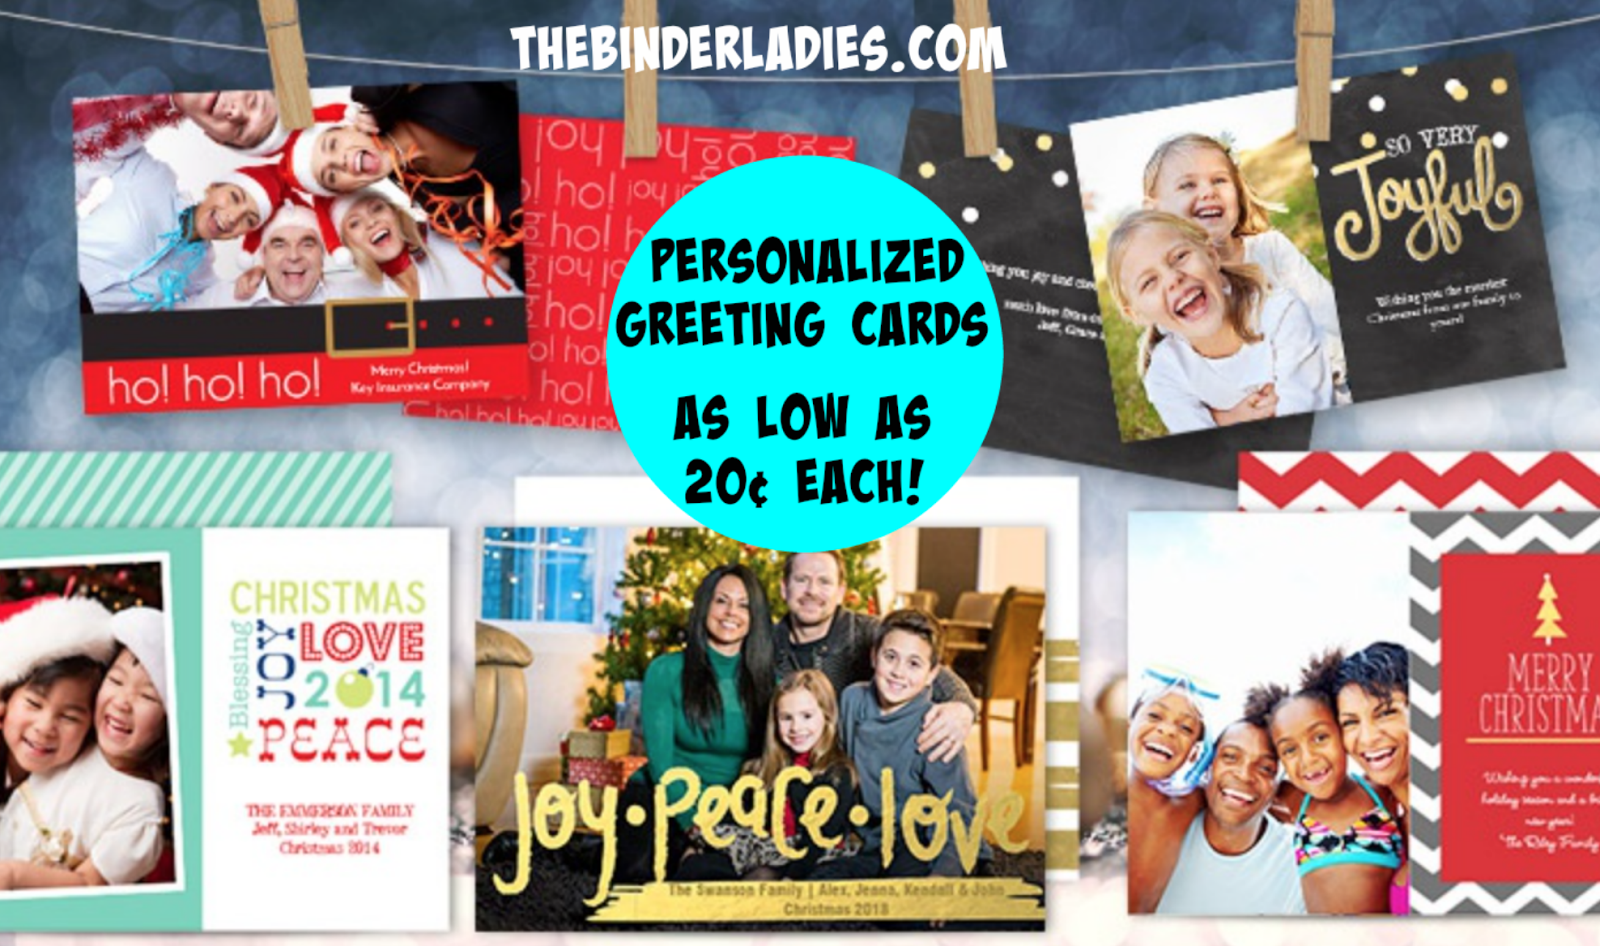 http://www.thebinderladies.com/2014/11/groupon-personalized-5x7-flat-holiday.html